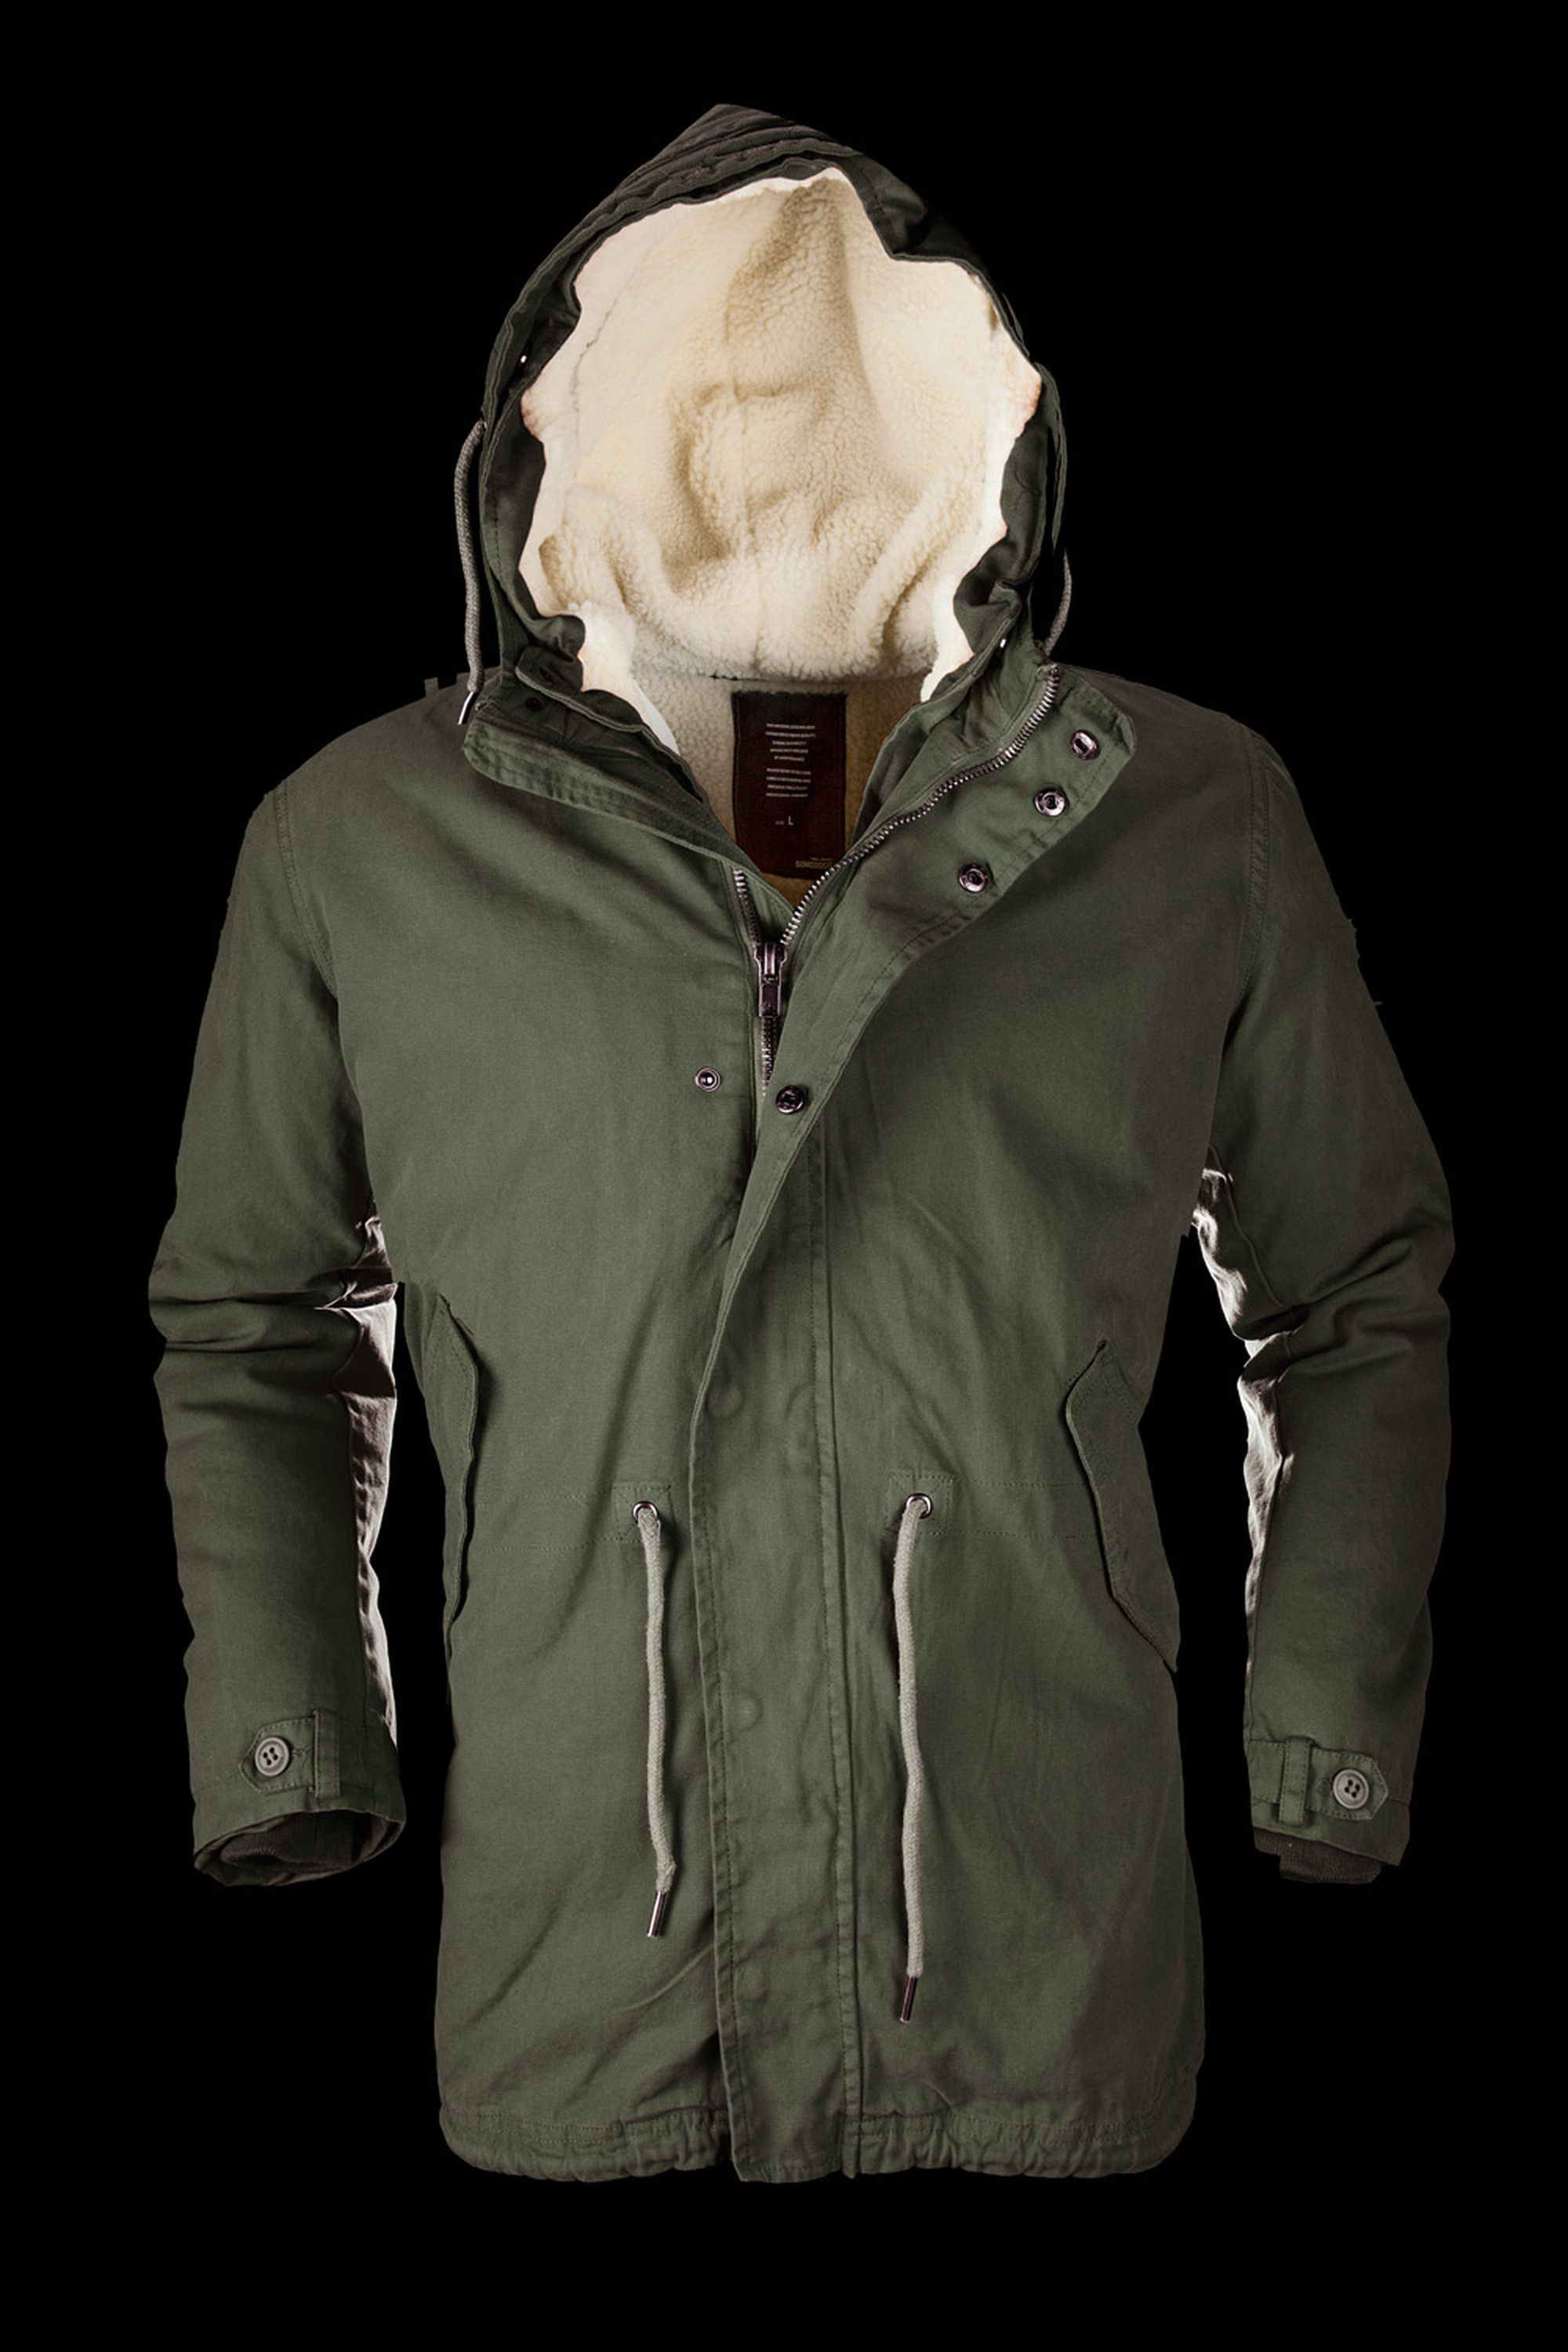 lowest price 245a8 d4451 jacket #man #parka #uomo #giubbotto #cappotto #inverno2014 ...